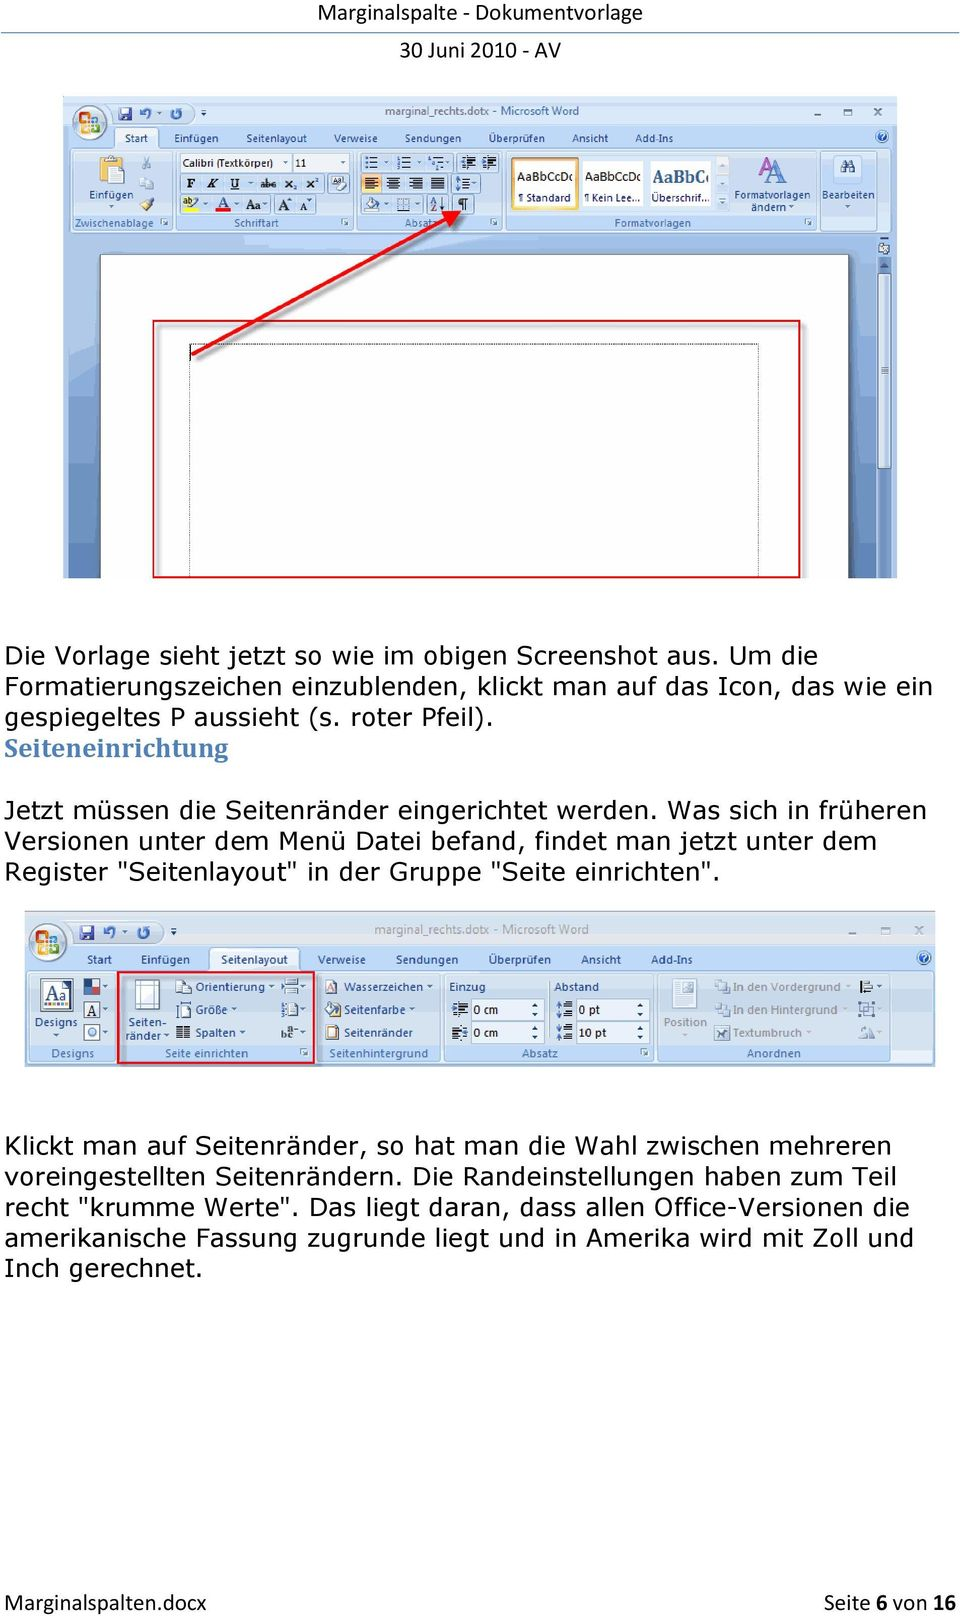 Marginalspalten (Randnotizen) in Word PDF